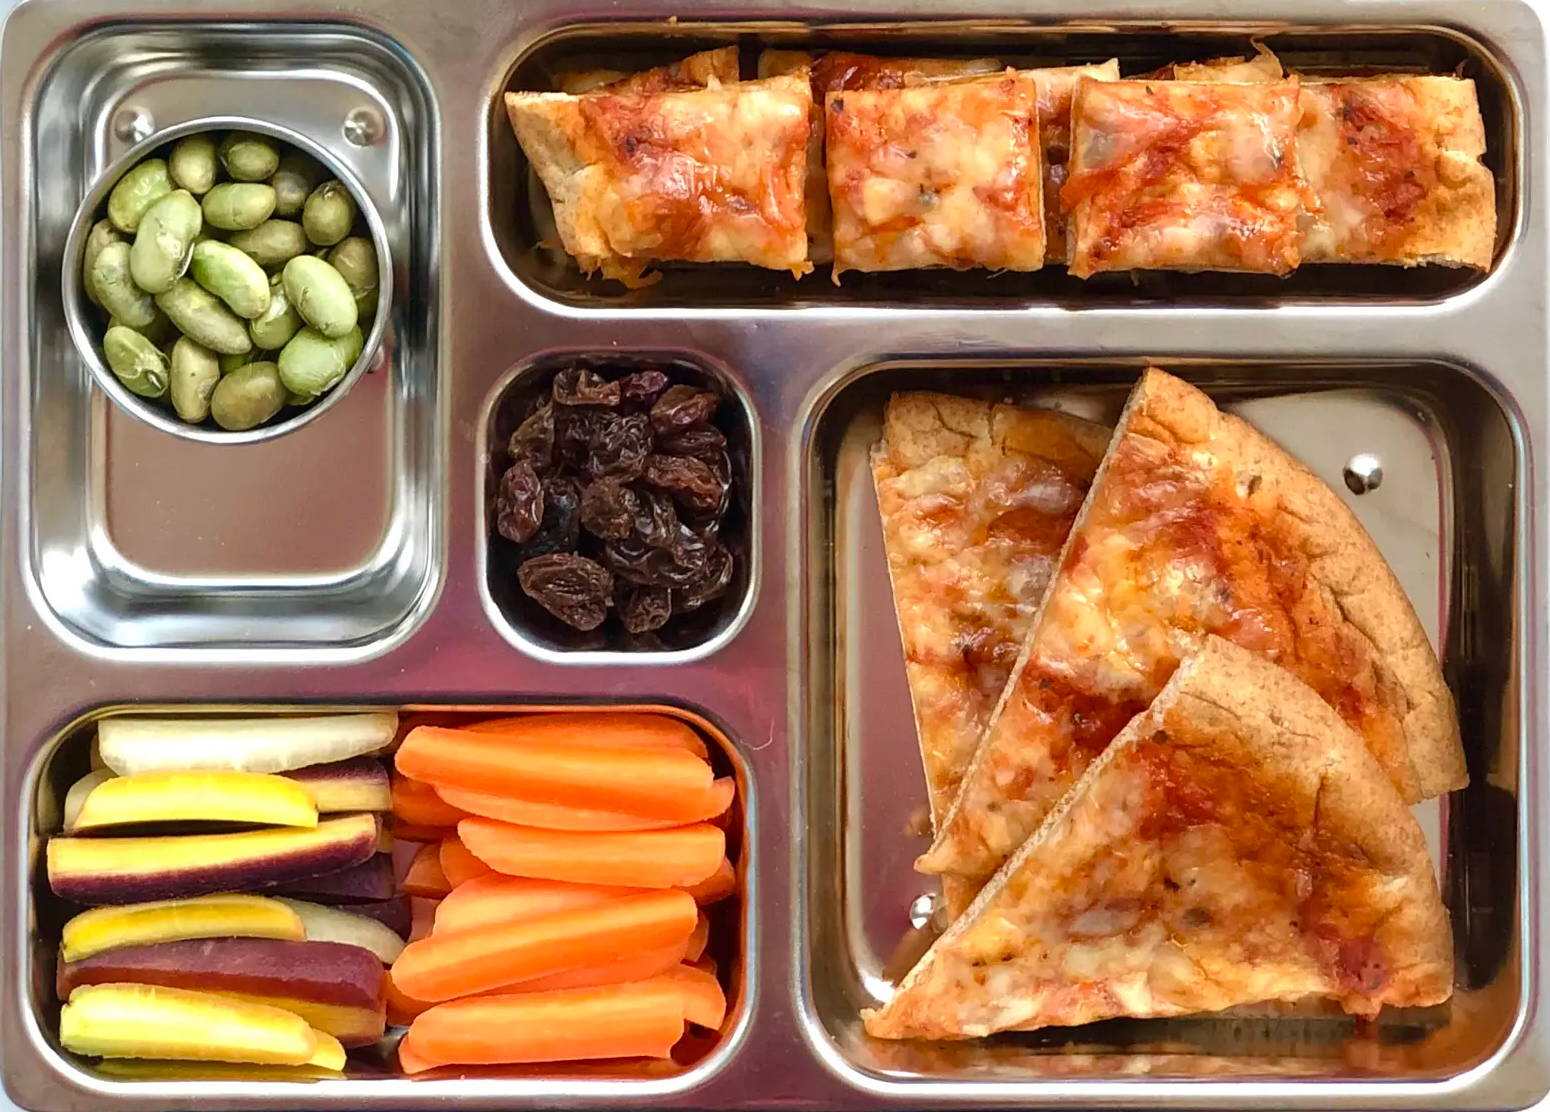 Sneak peek of a kid's quick and healthy school lunch containing Pita Pizza, Sliced Carrots, Dry Roasted Edamame, and Raisins.